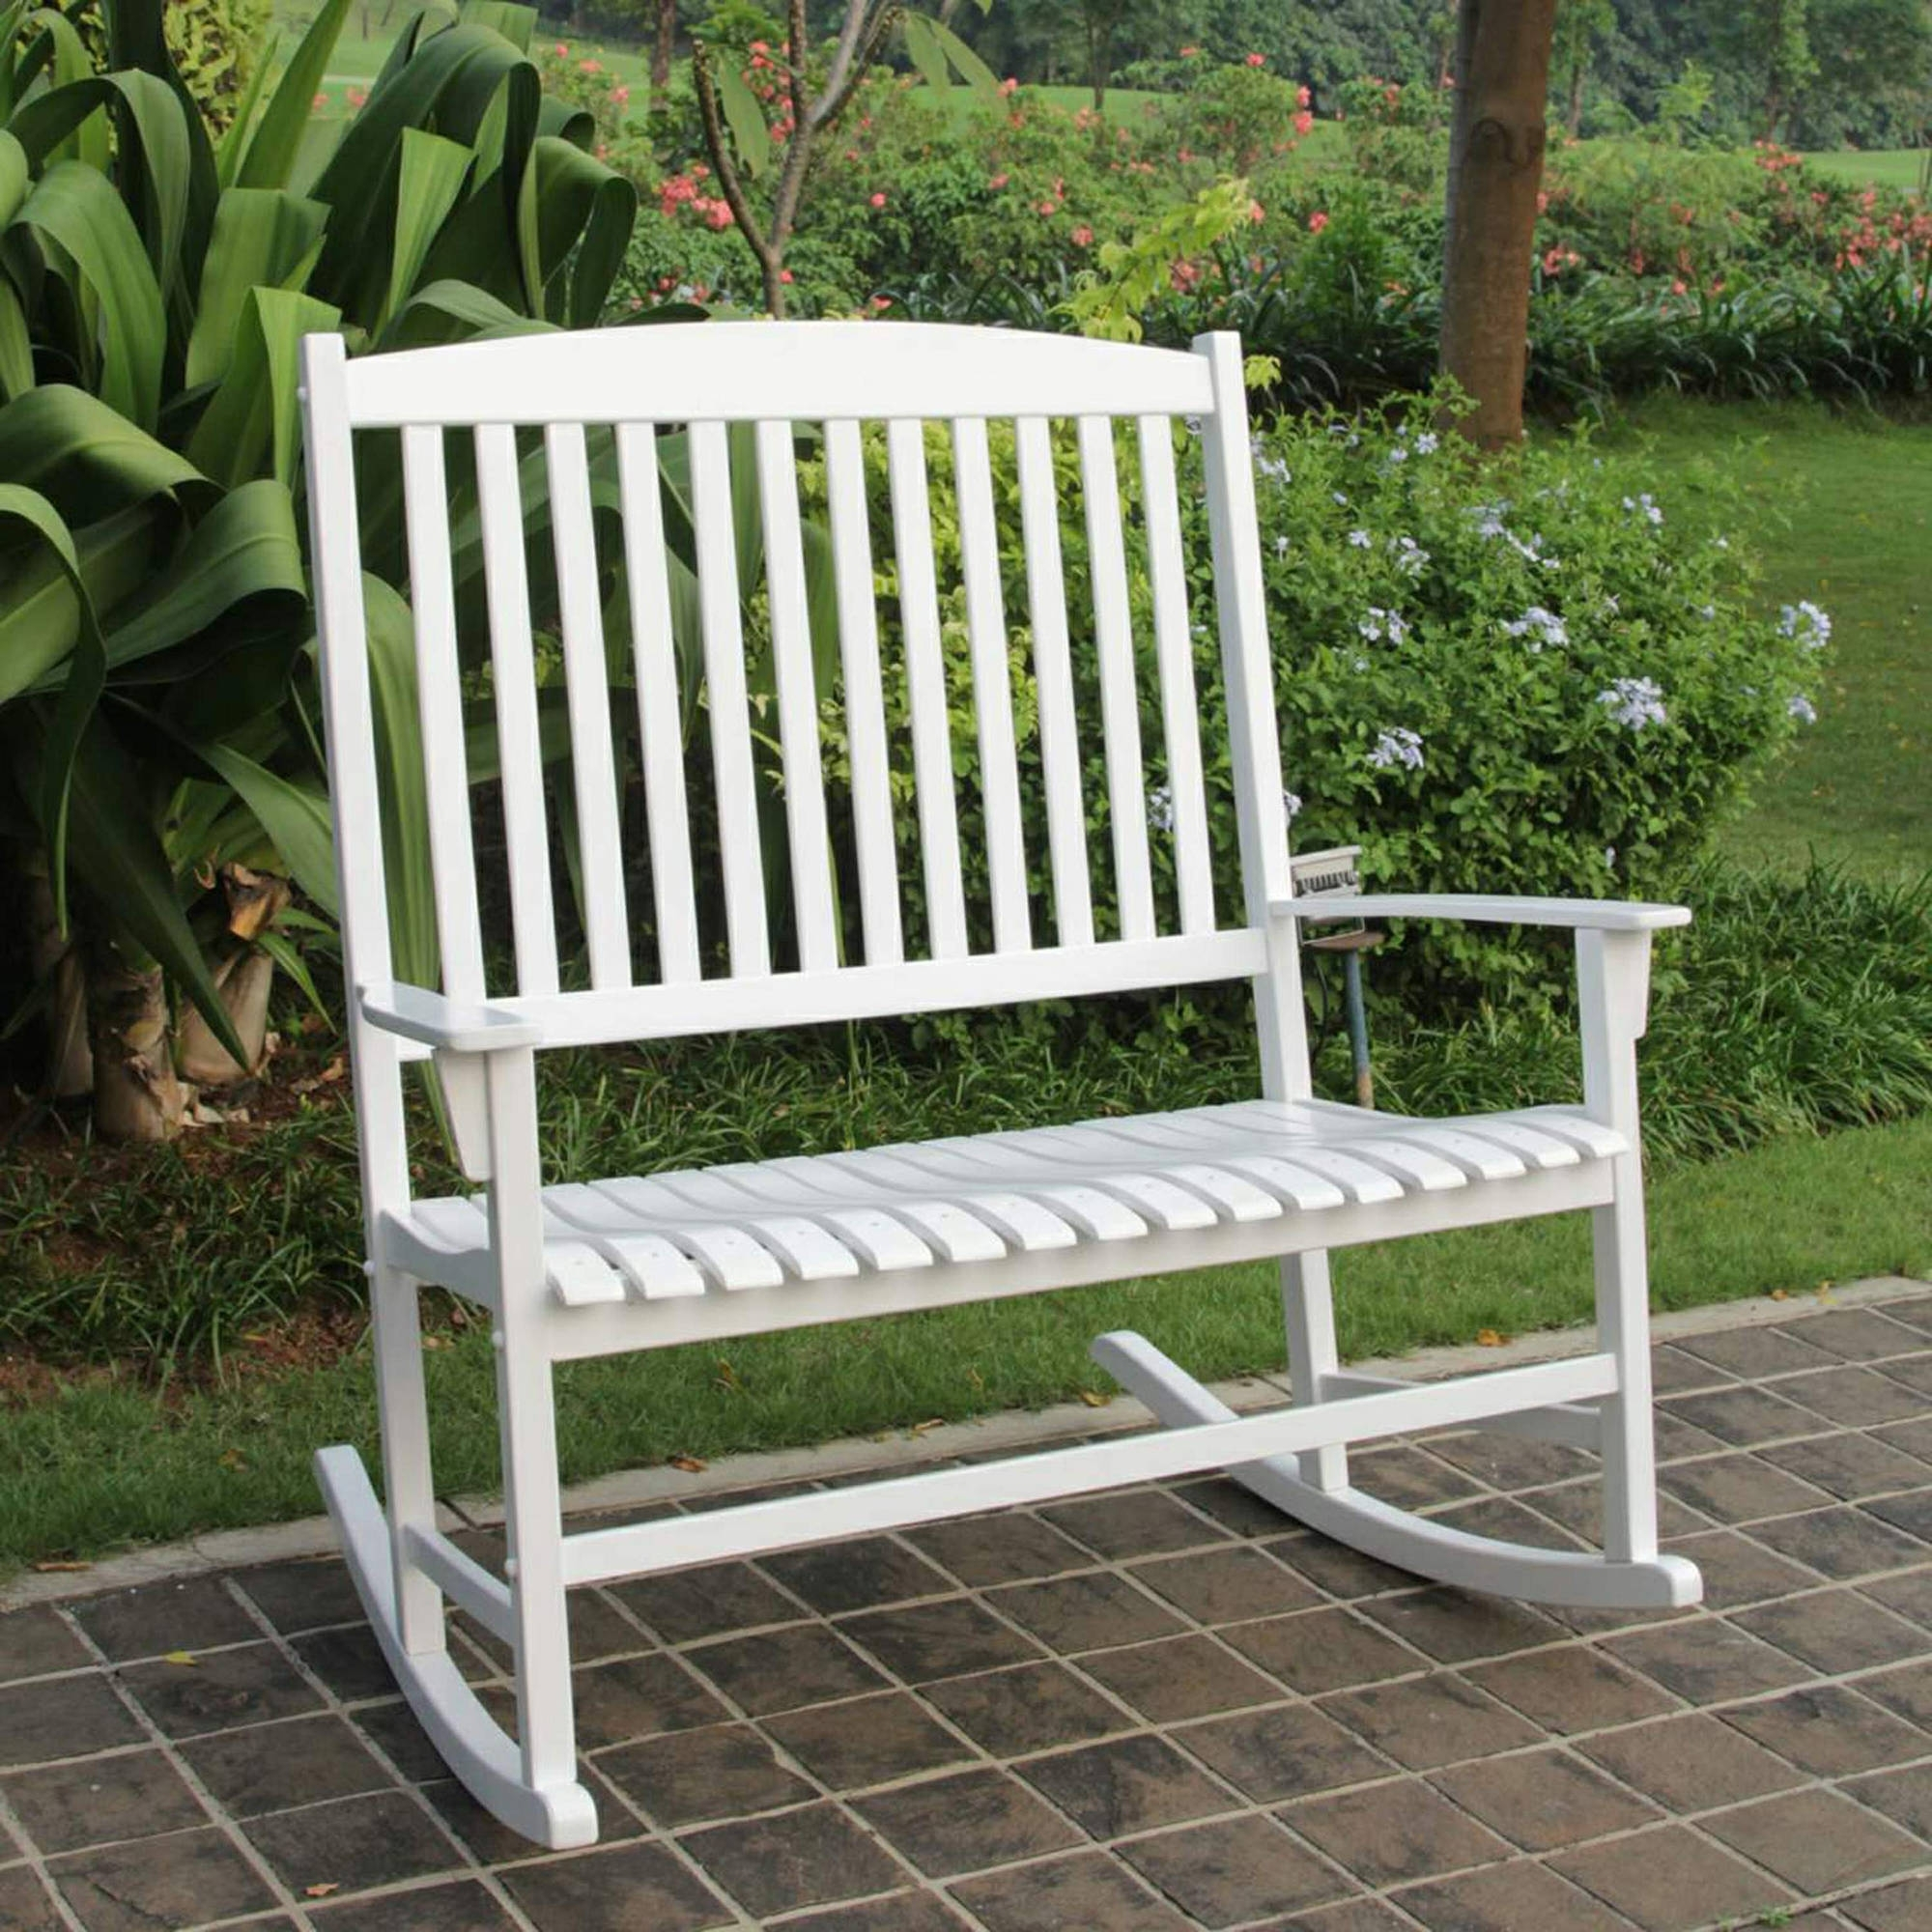 Well Known Patio Loveseat White Hardwood Outdoor Rocking Chair For 2 With Regard To Wooden Patio Rocking Chairs (View 18 of 20)